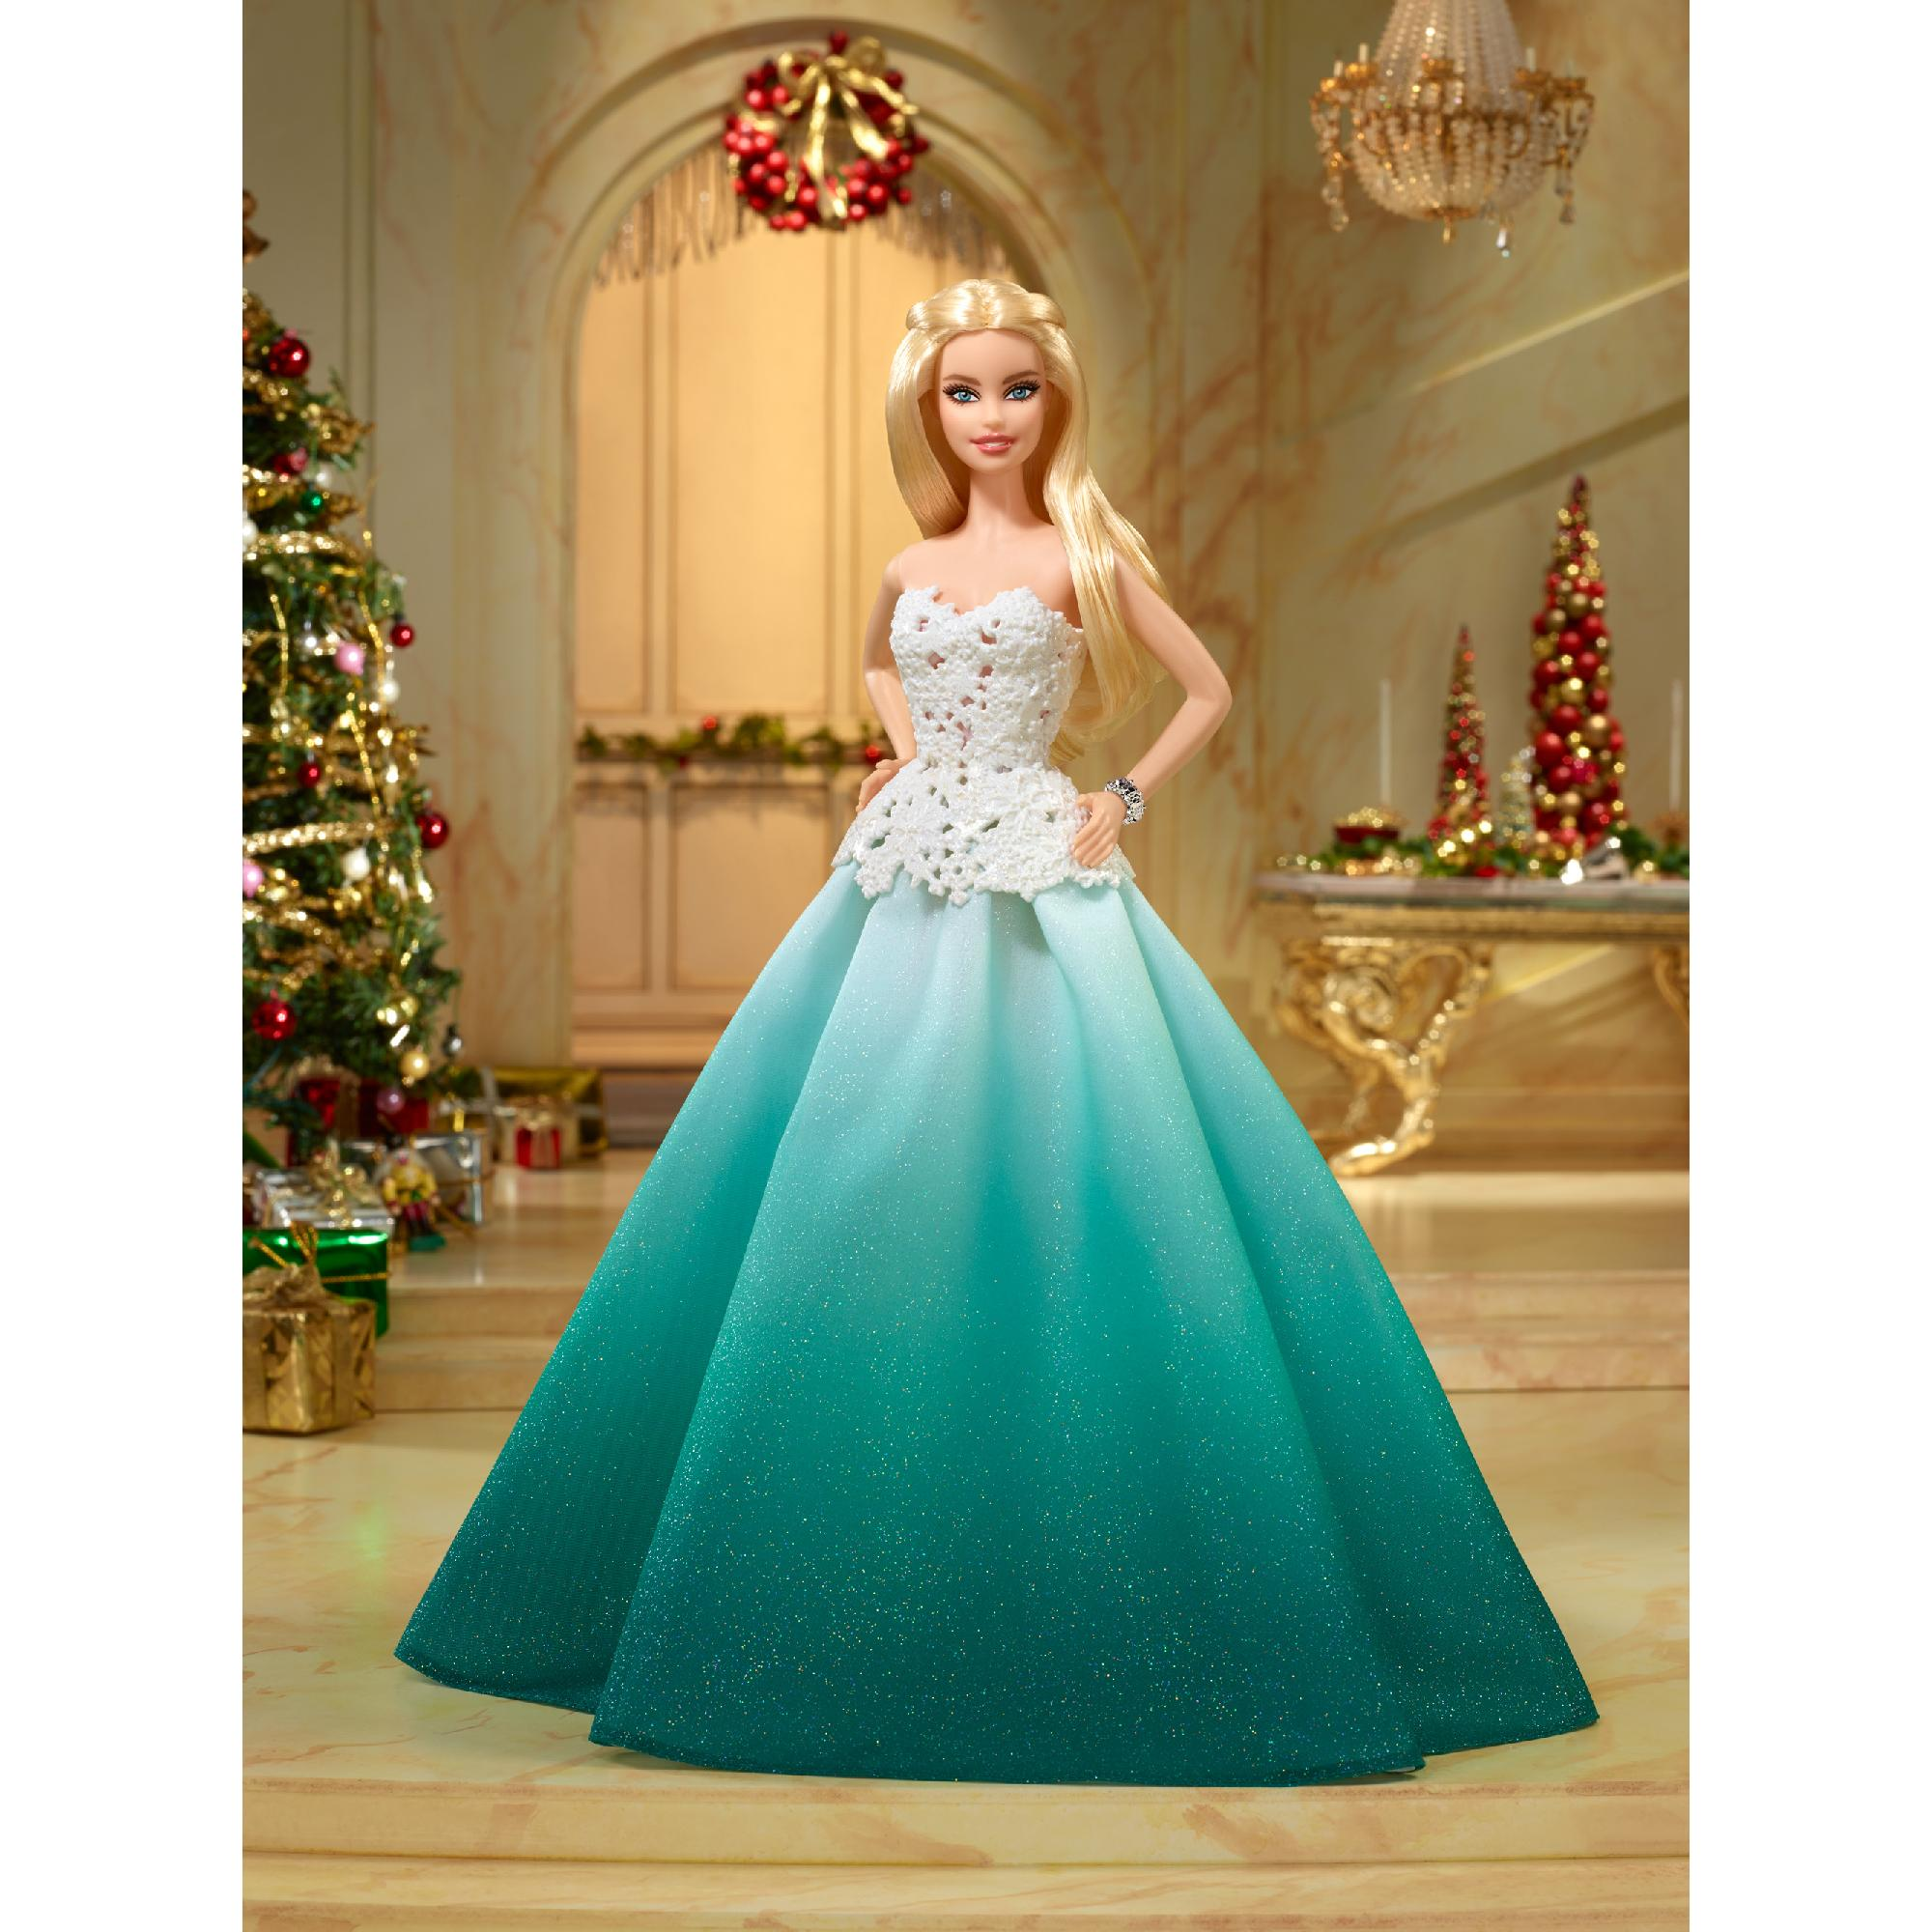 2016 Holiday Barbie Doll - Walmart.com